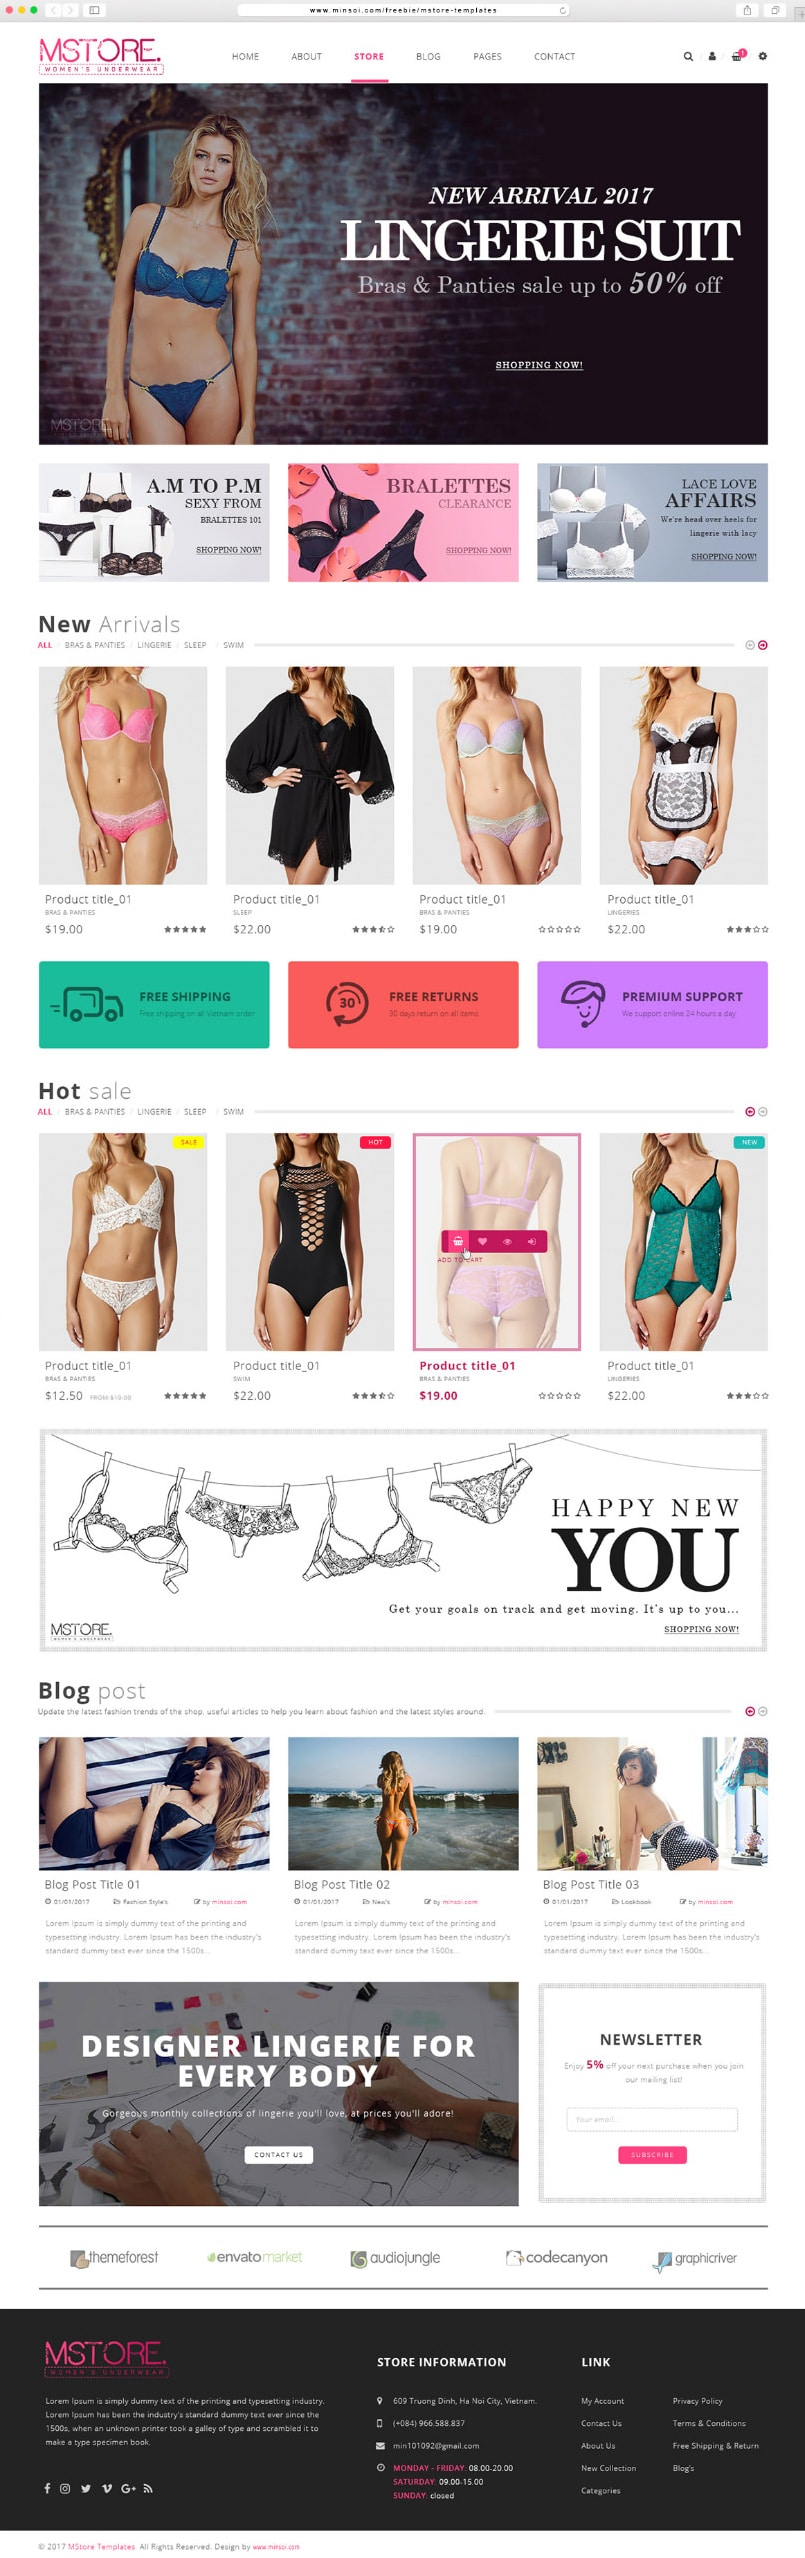 MSTORE - Free E commerce Templates PSD